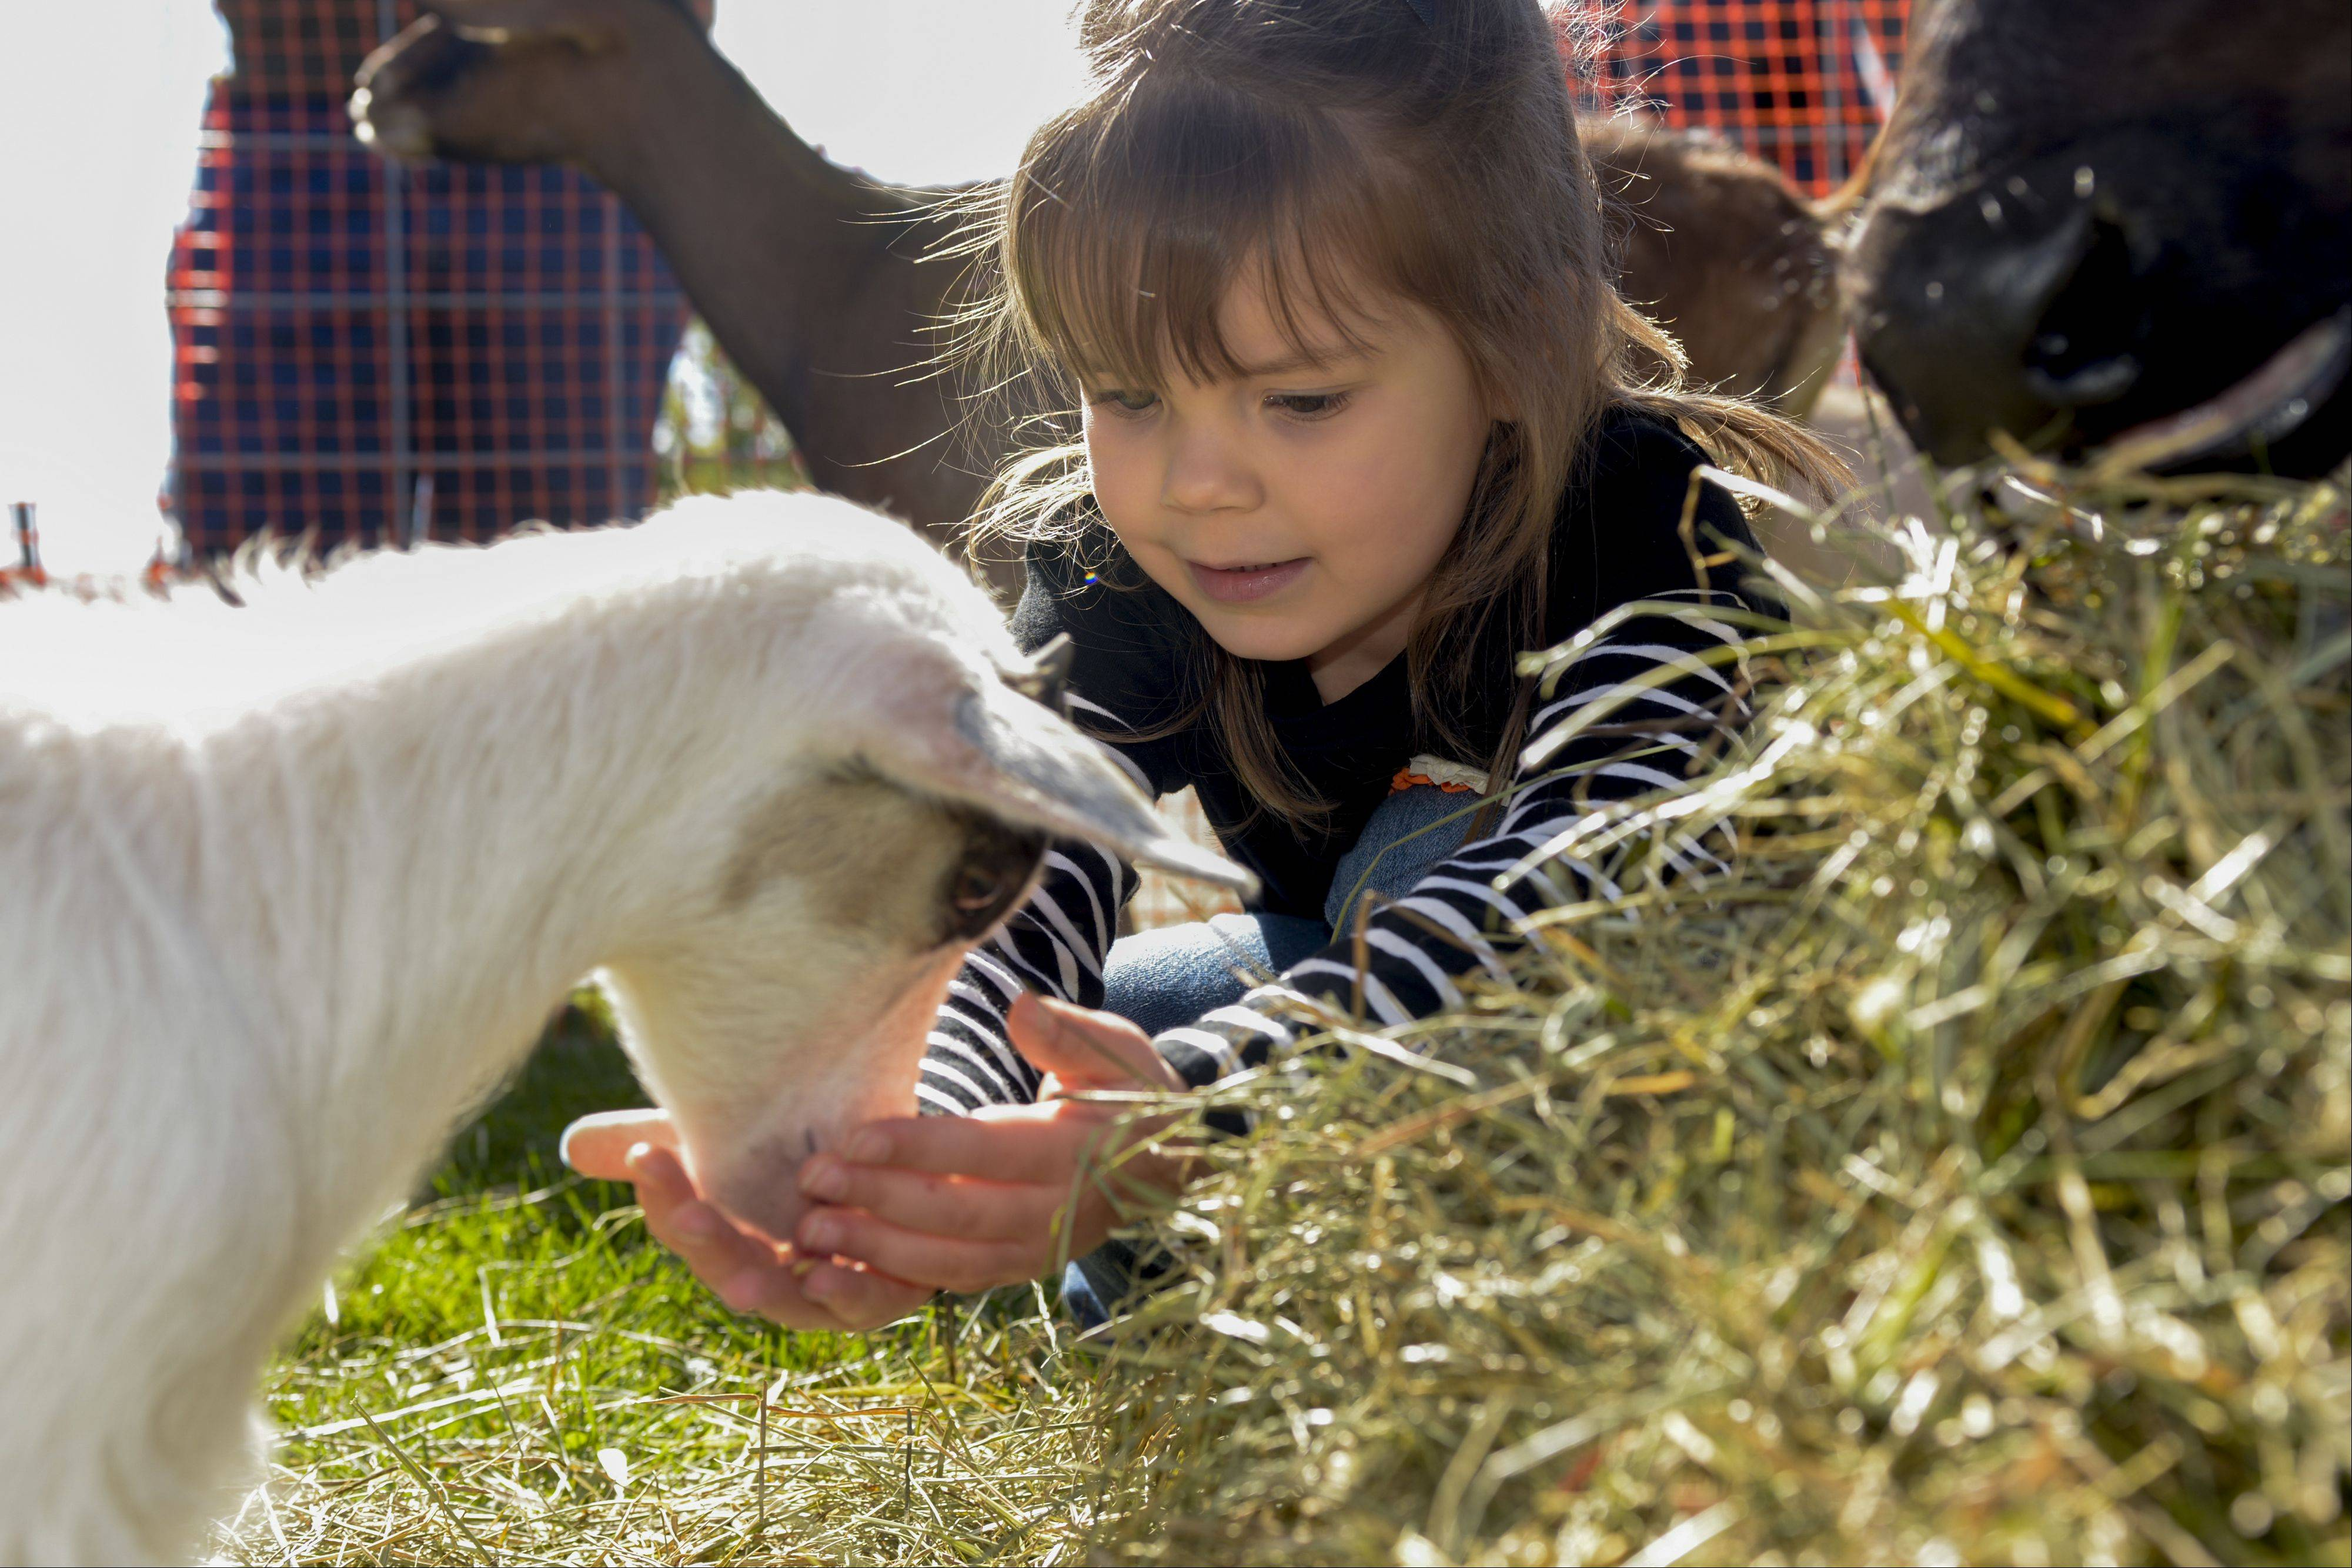 Leah Stiles, 4, of Grayslake feeds a baby goat Sunday while visiting the Bonner Heritage Farm�s Country Fair in Lindenhurst. The event featured wagon rides, crafts, games and a petting zoo on an 1842 farm.